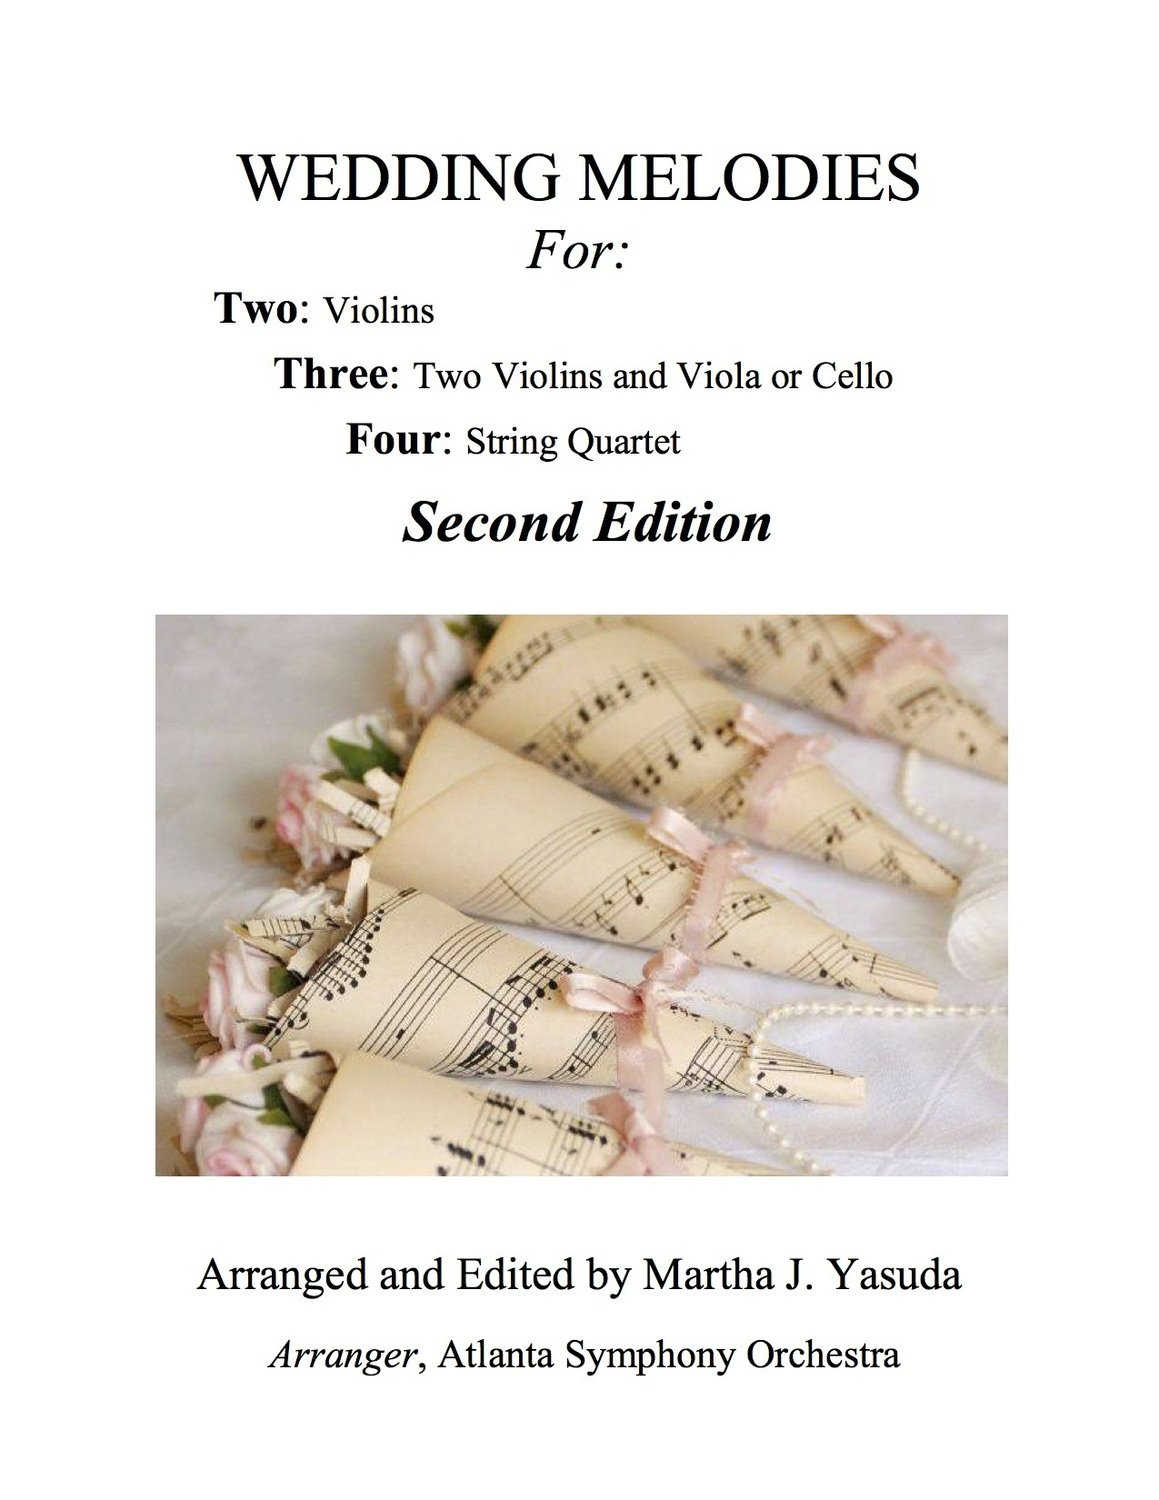 055 - Wedding Melodies For Two, Three or Four (Second Edition)